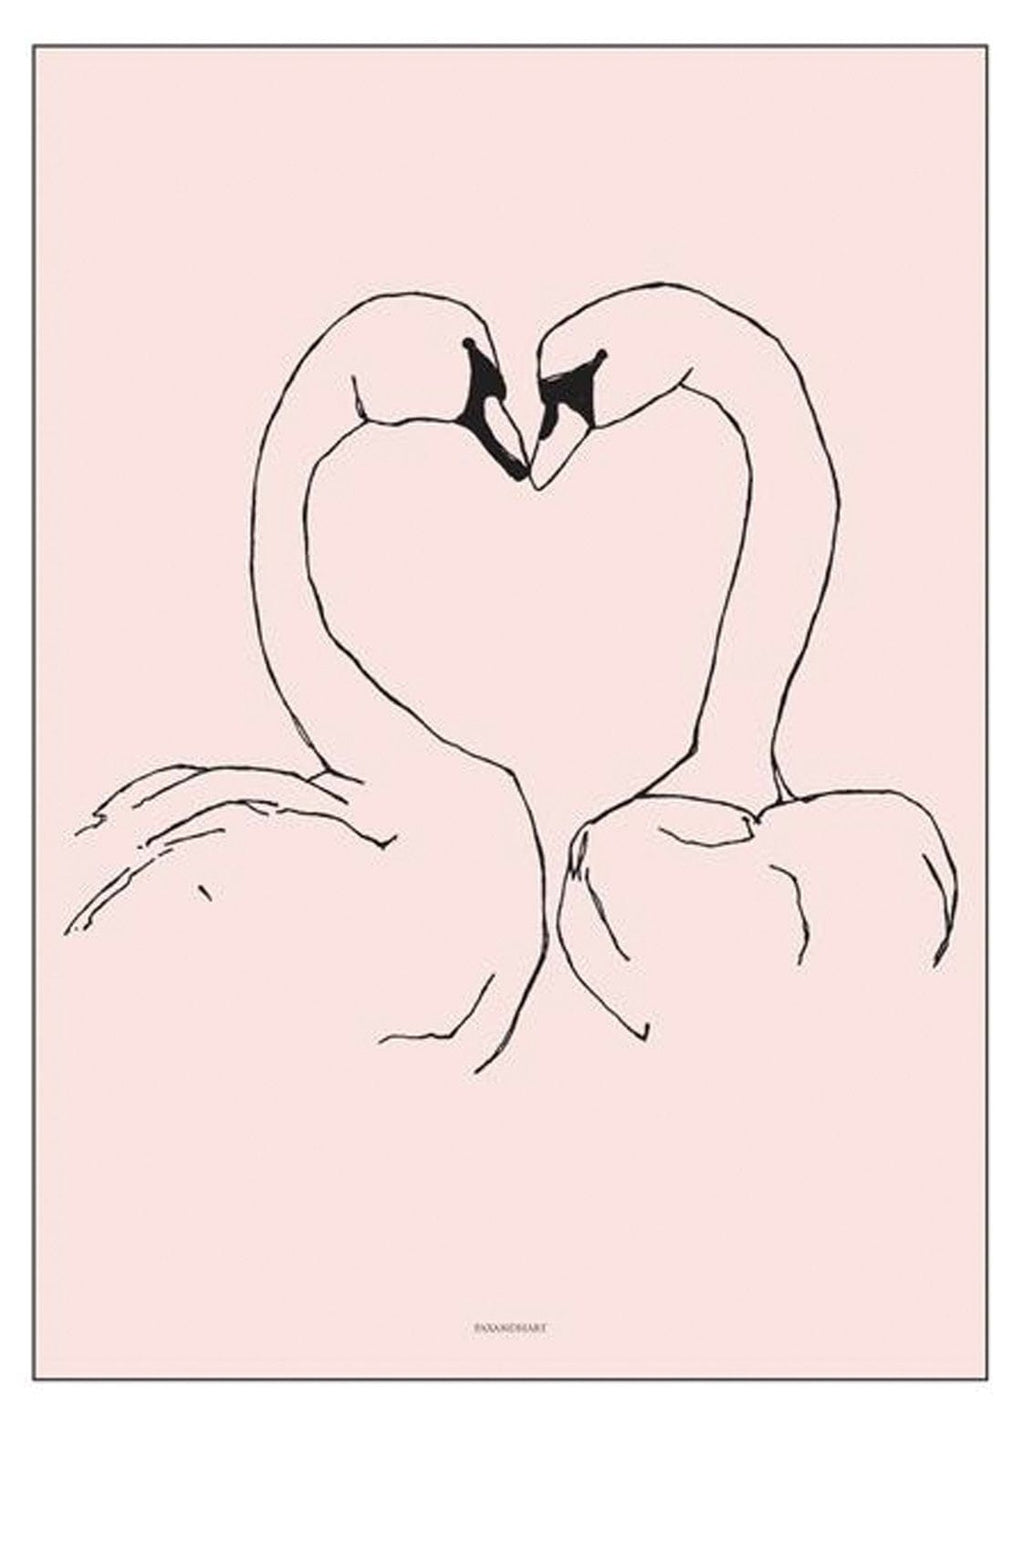 PAX AND HART SUNDAY LOVE BIRDS SWAN POSTER, 50 x 70CM